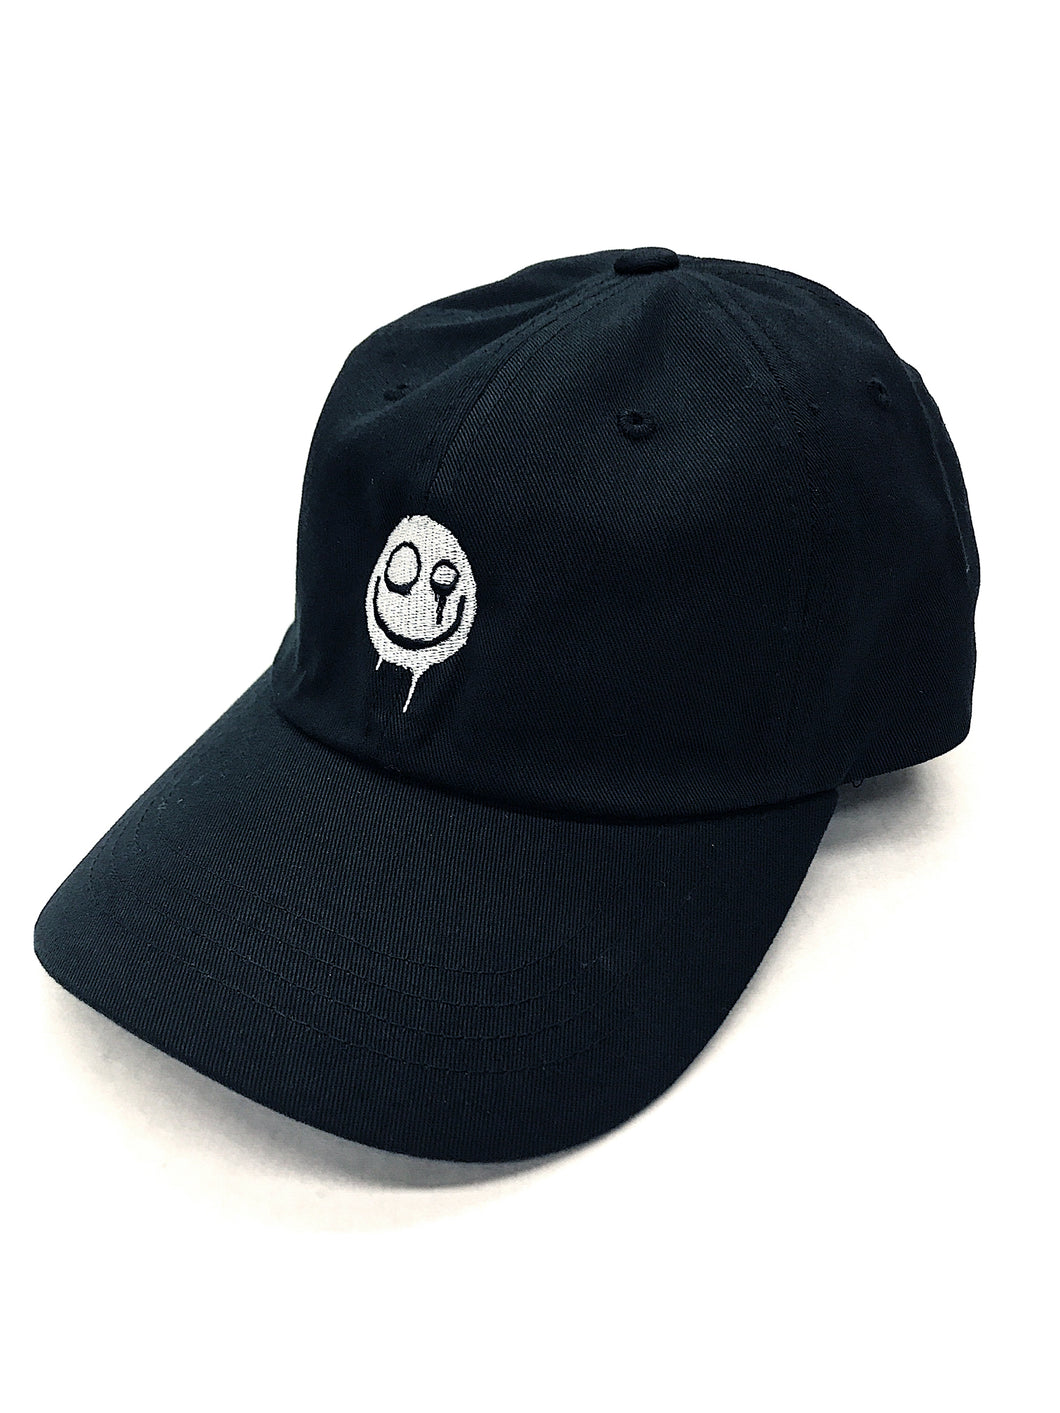 SOLD OUT - Smiley Dad Hat